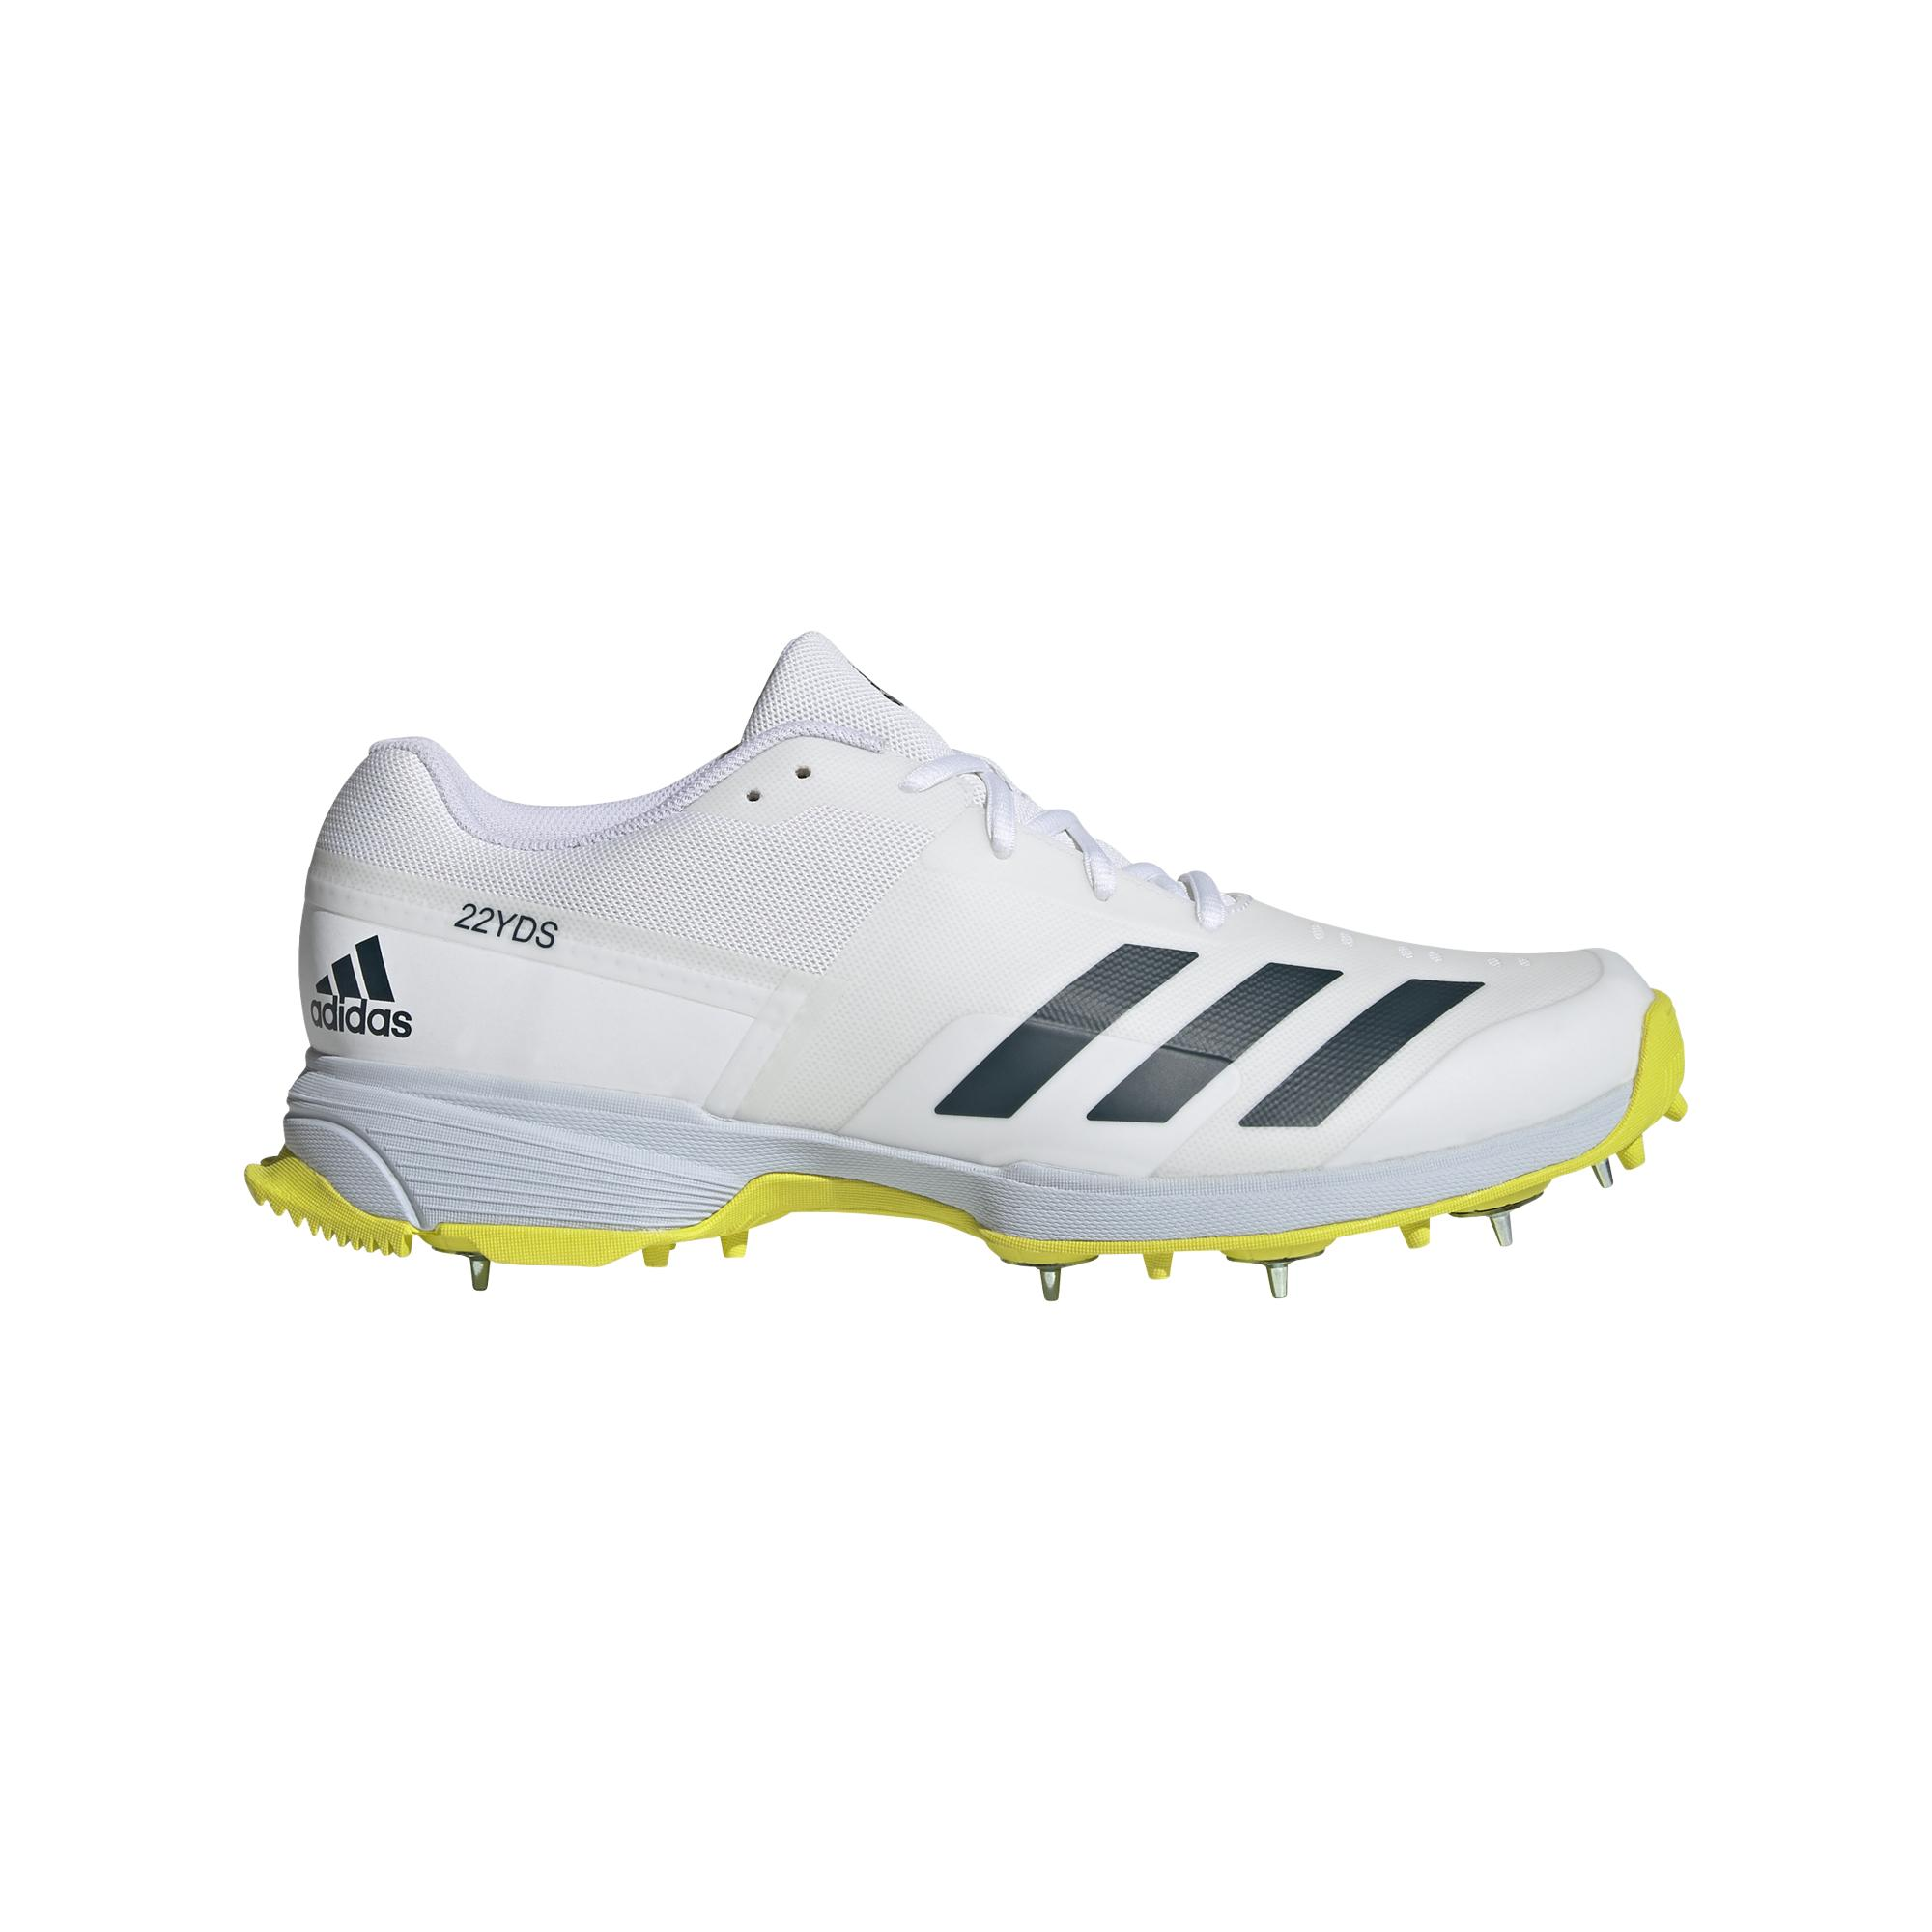 Adidas 22YDS Cricket Shoes (2021) - Buy Now